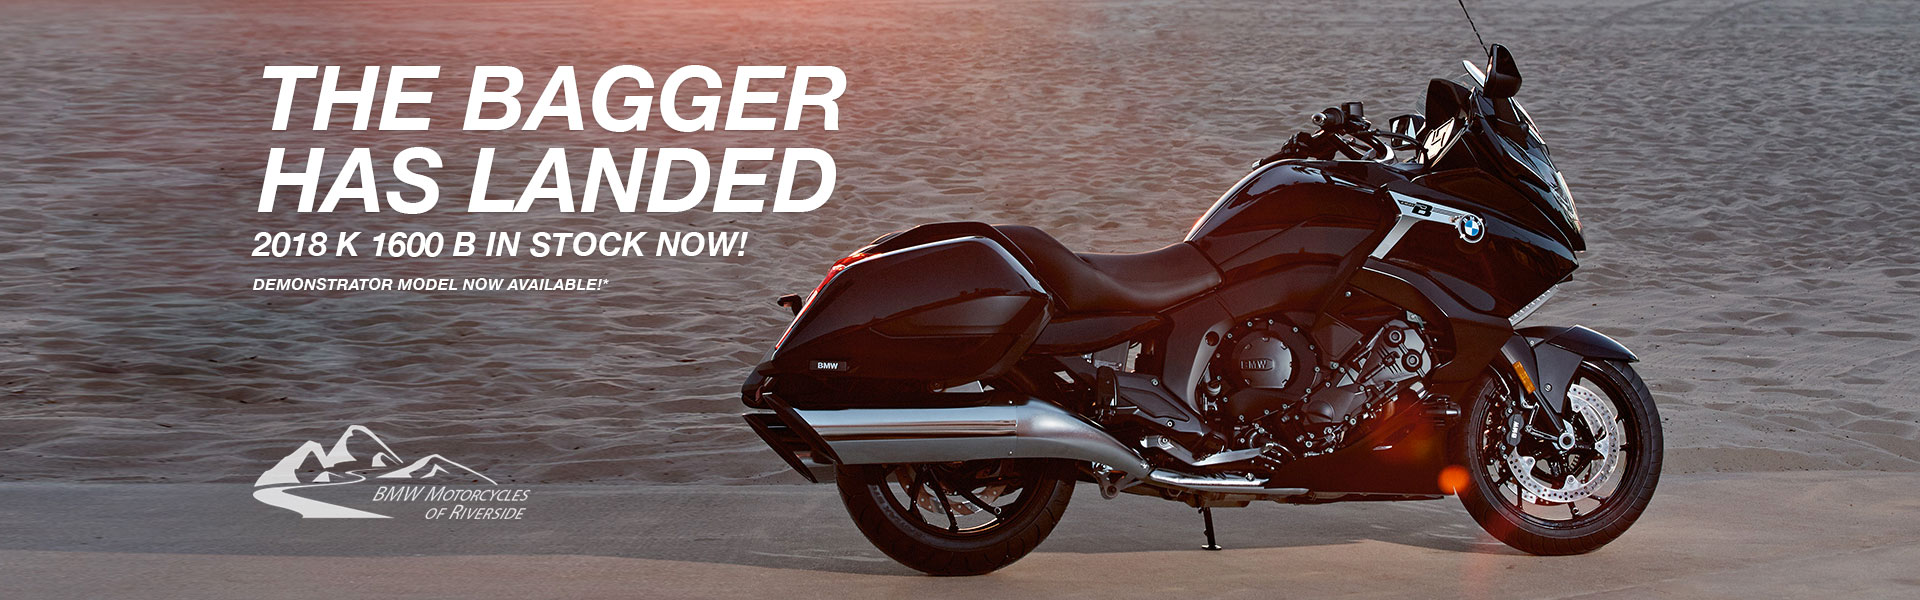 The Bagger Has Landed. 2018 K 1600 B in stock now!